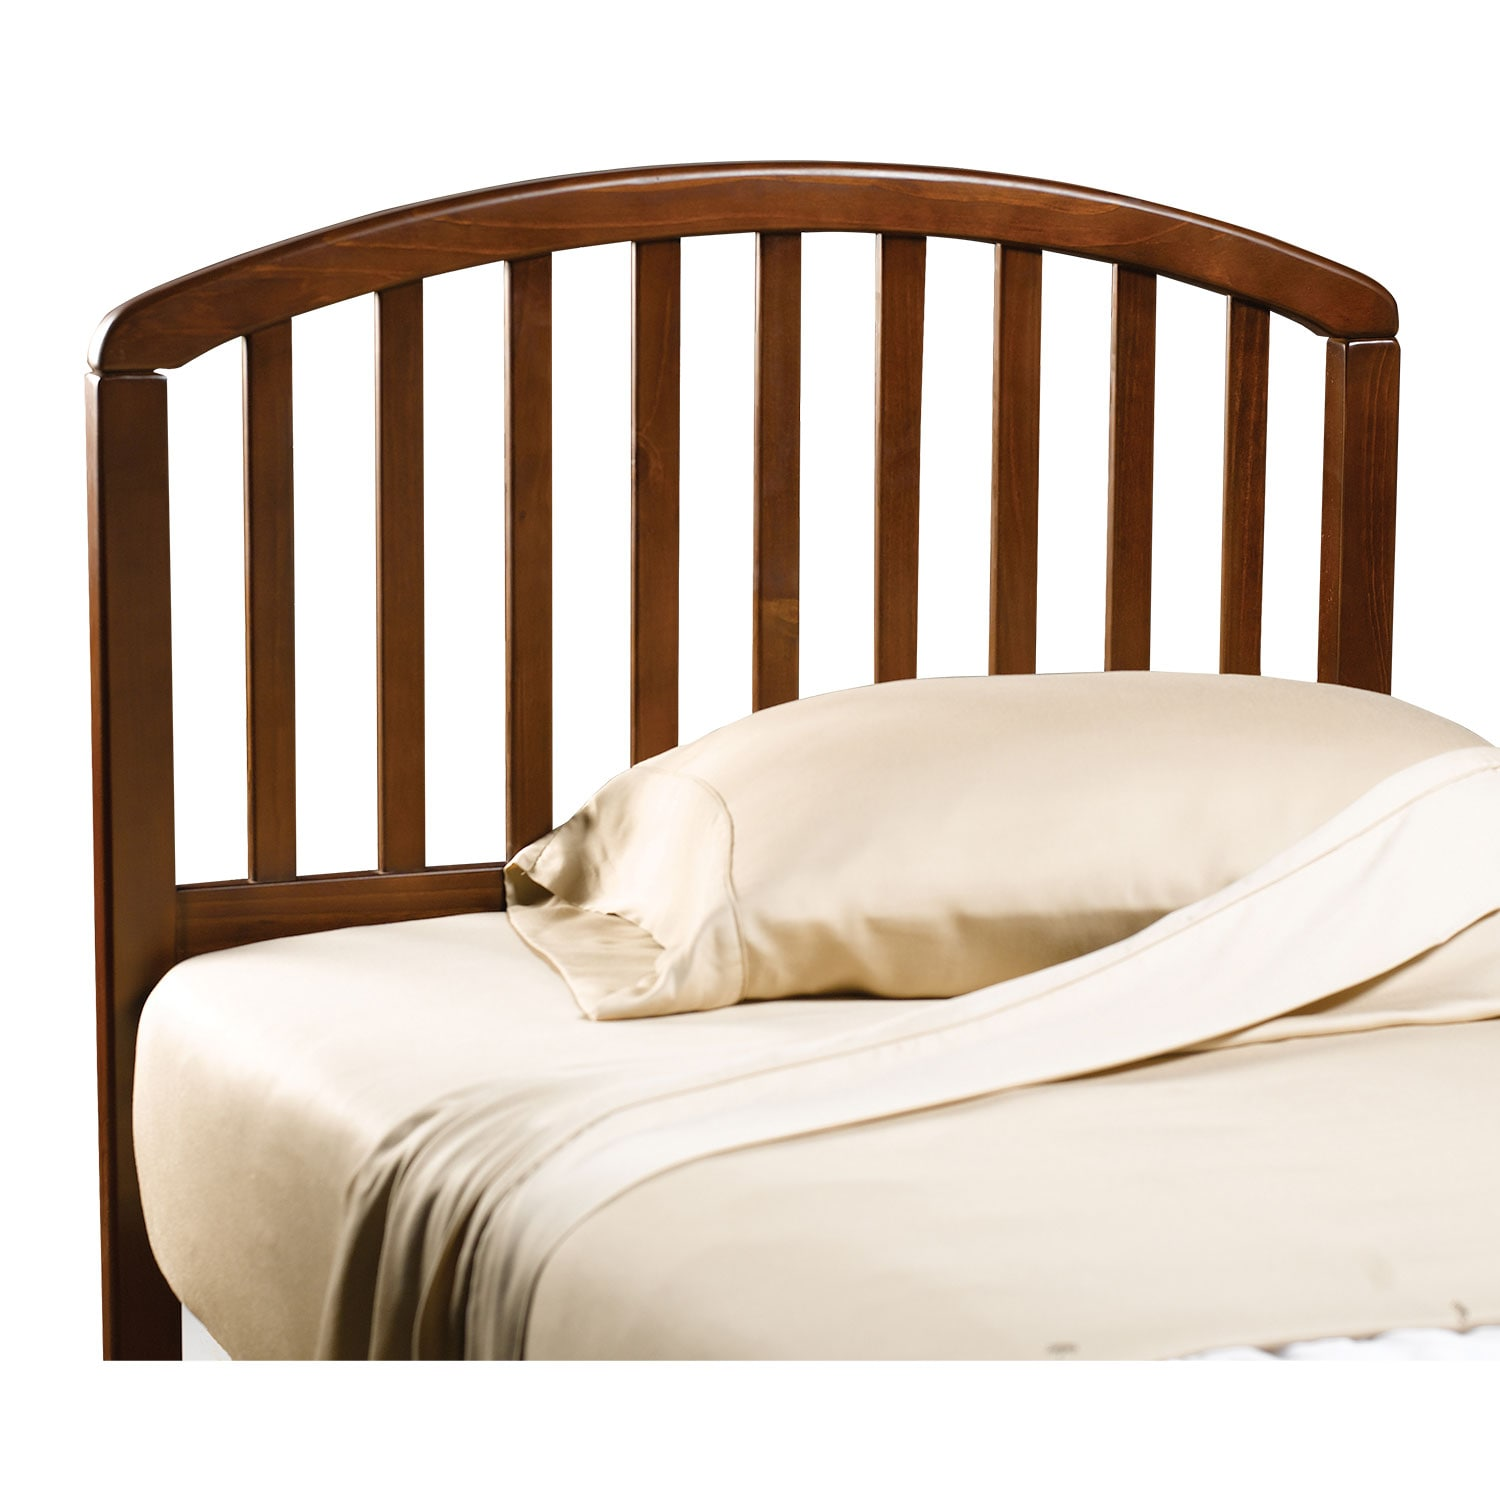 Bedroom Furniture - Carolina Twin Headboard - Cherry